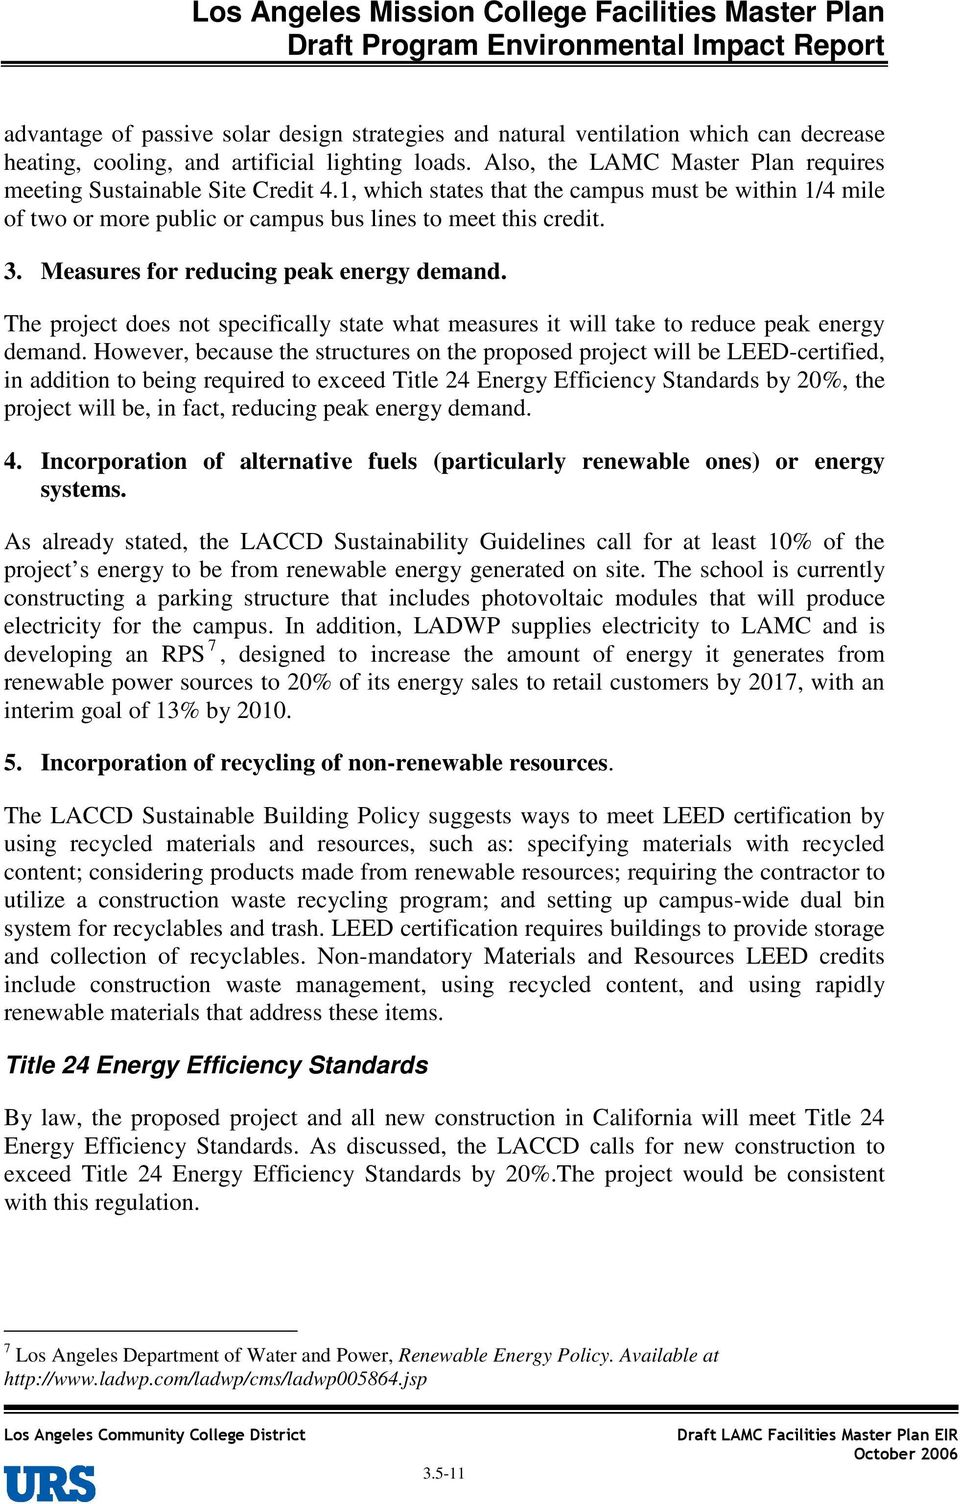 Measures for reducing peak energy demand. The project does not specifically state what measures it will take to reduce peak energy demand.